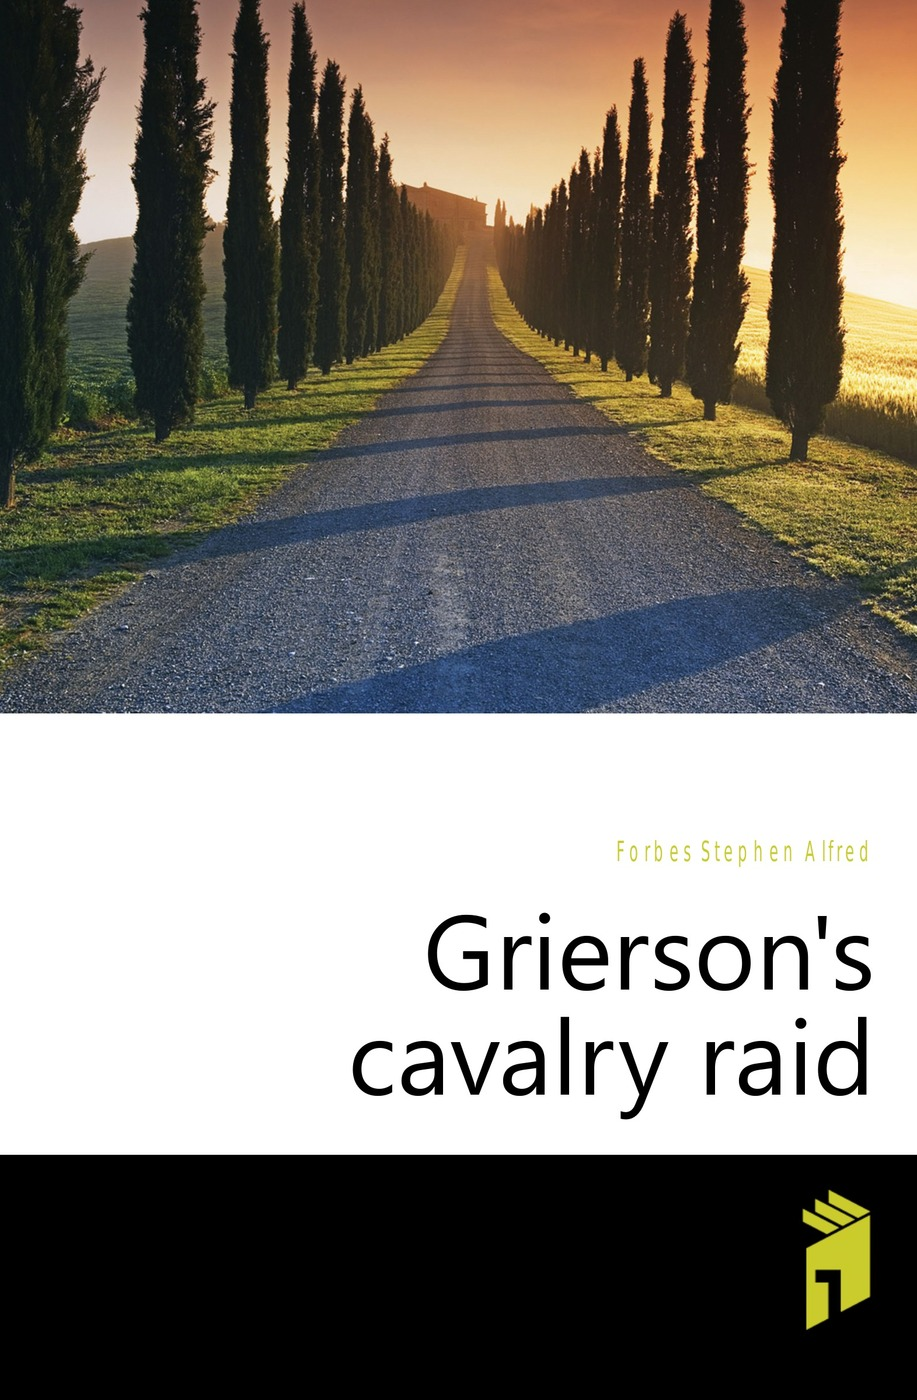 Forbes Stephen Alfred Griersons cavalry raid